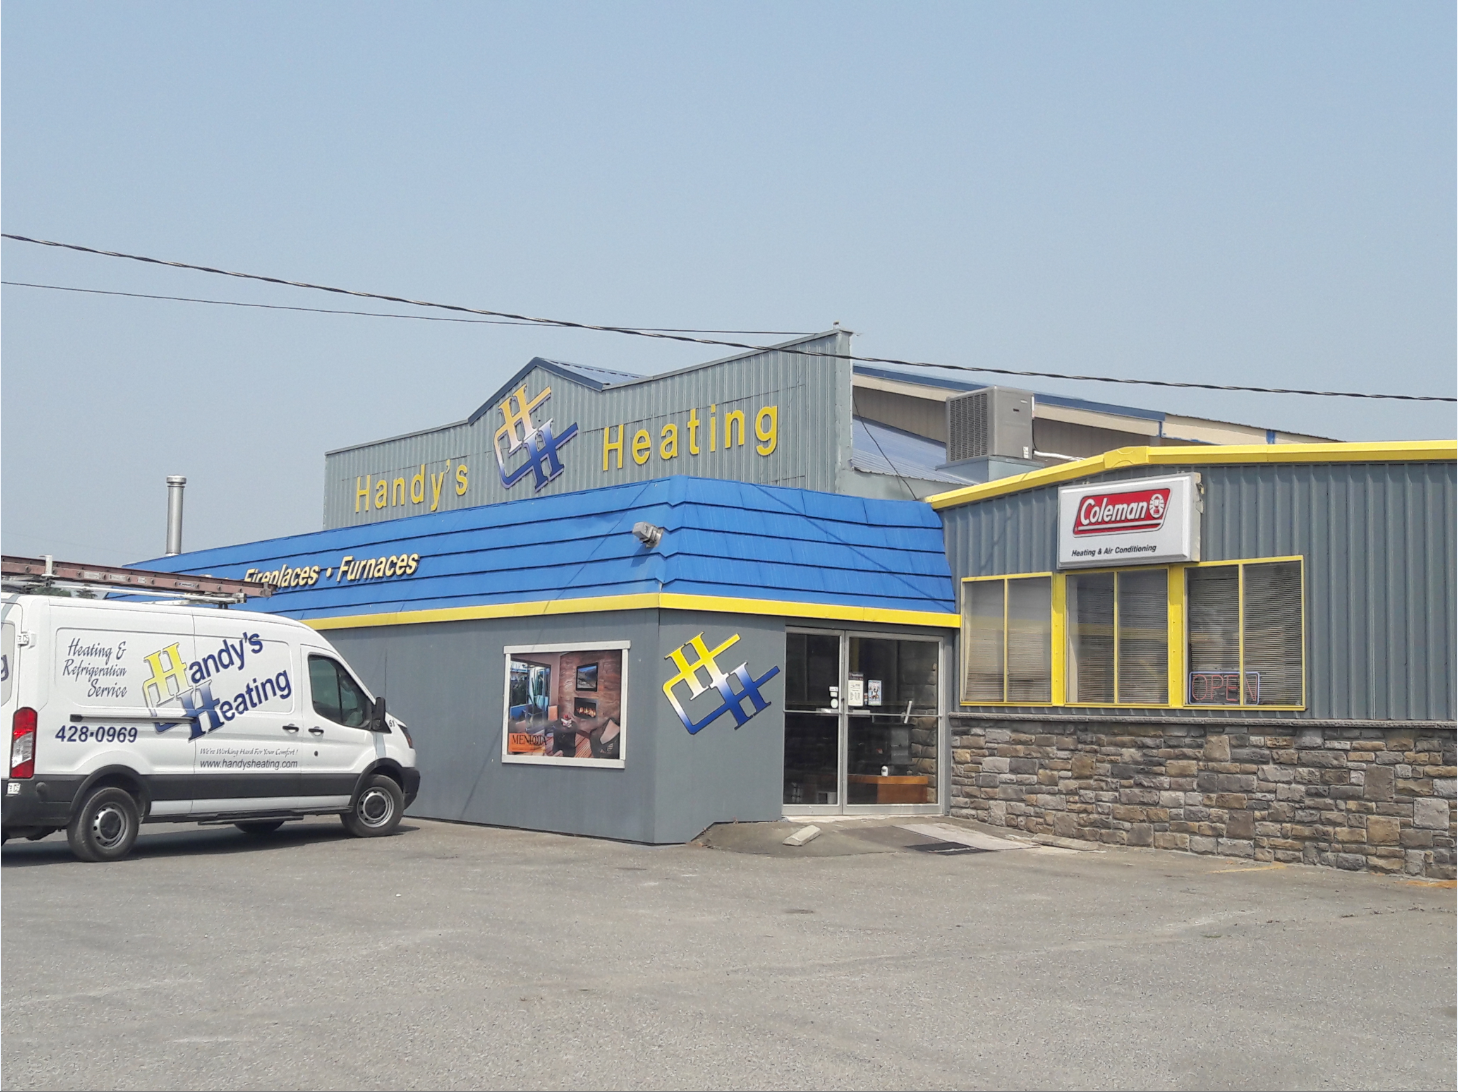 Handy's Heating, Inc. Building or Showroom